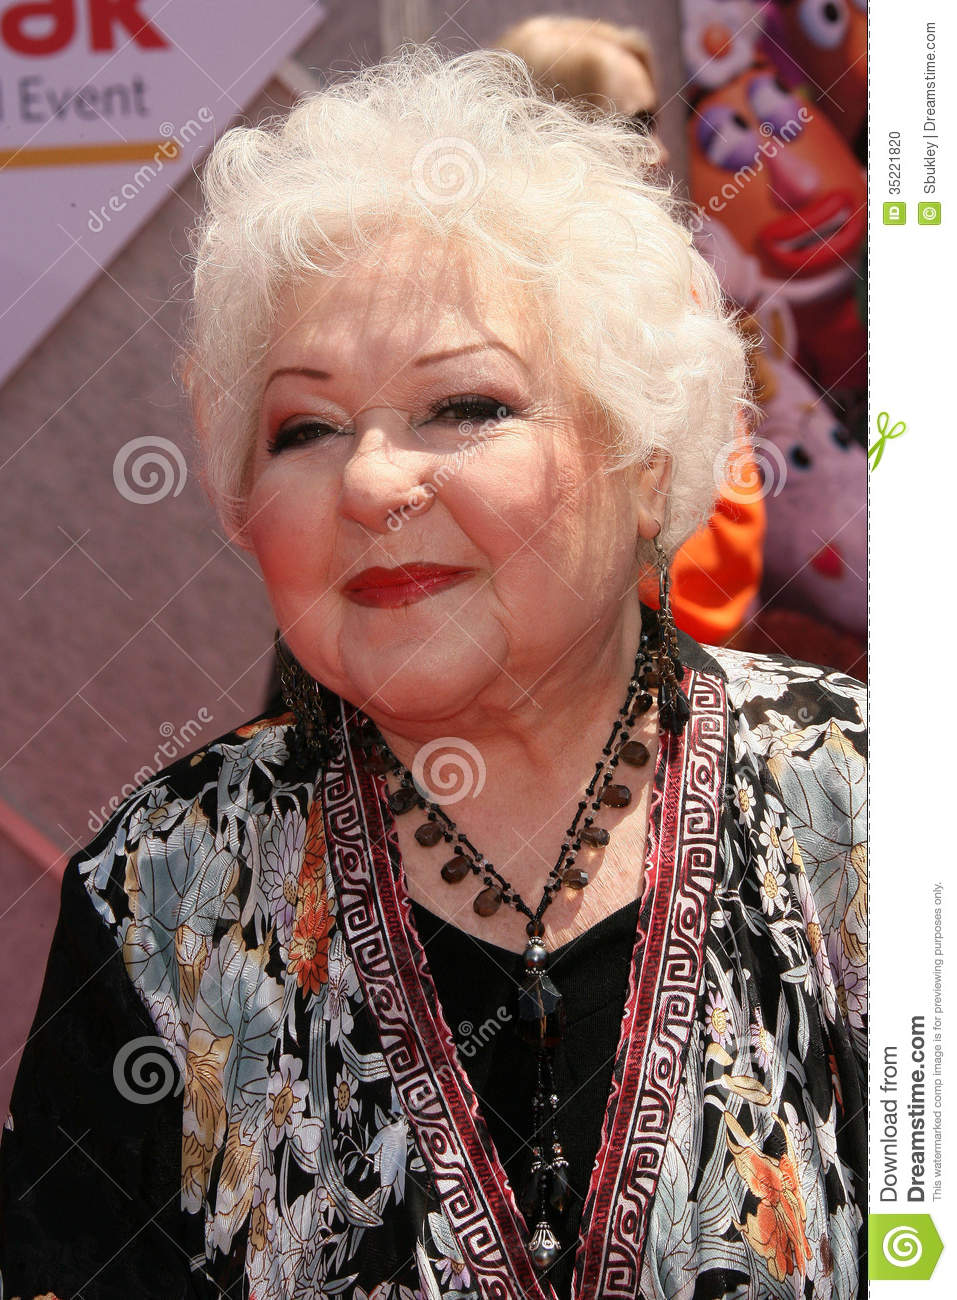 estelle harris utahestelle harris twitter, estelle harris, estelle harris net worth, estelle harris imdb, estelle harris young, estelle harris commercial, estelle harris obituary, estelle harris dead, estelle harris behind the voice actors, estelle harris voice, estelle harris husband, estelle harris family guy, estelle harris interview, estelle harris 2015, estelle harris big bang theory, estelle harris utah, estelle harris kraft mac and cheese, estelle harris zack and cody, estelle harris toy story, estelle harris mrs potato head